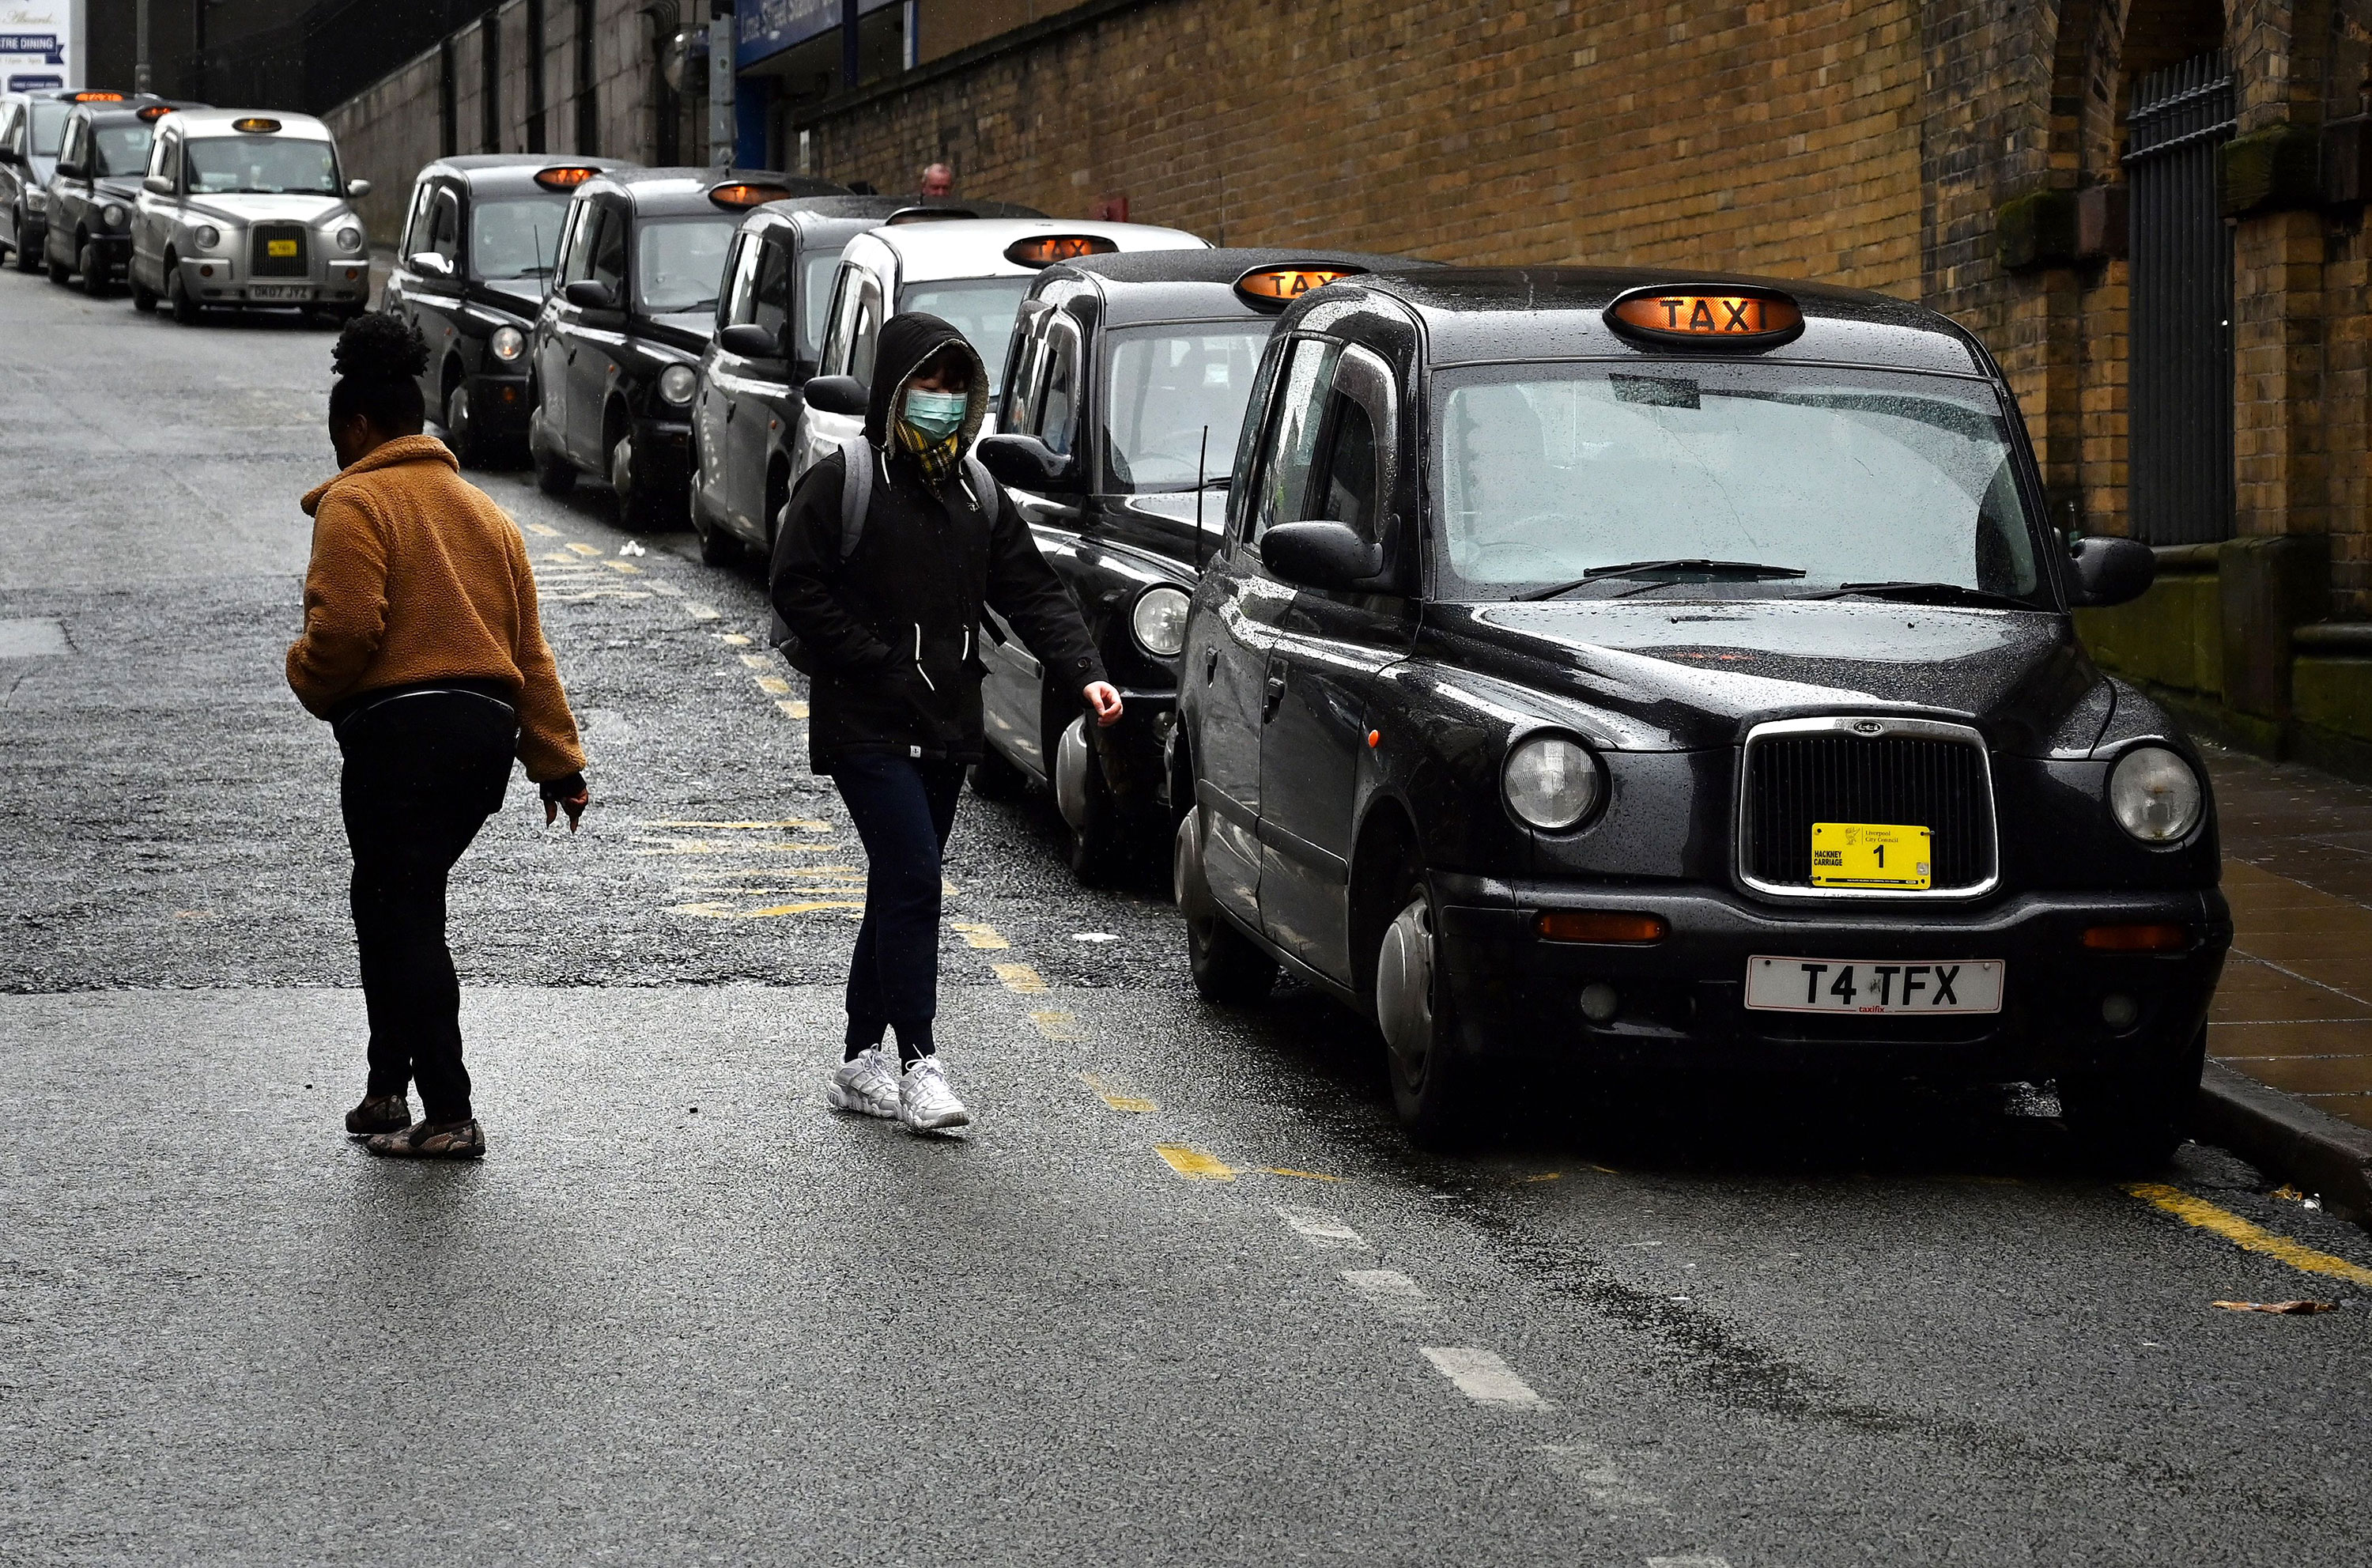 Pedestrians walk past a line of taxis on March 18 in Liverpool, England.